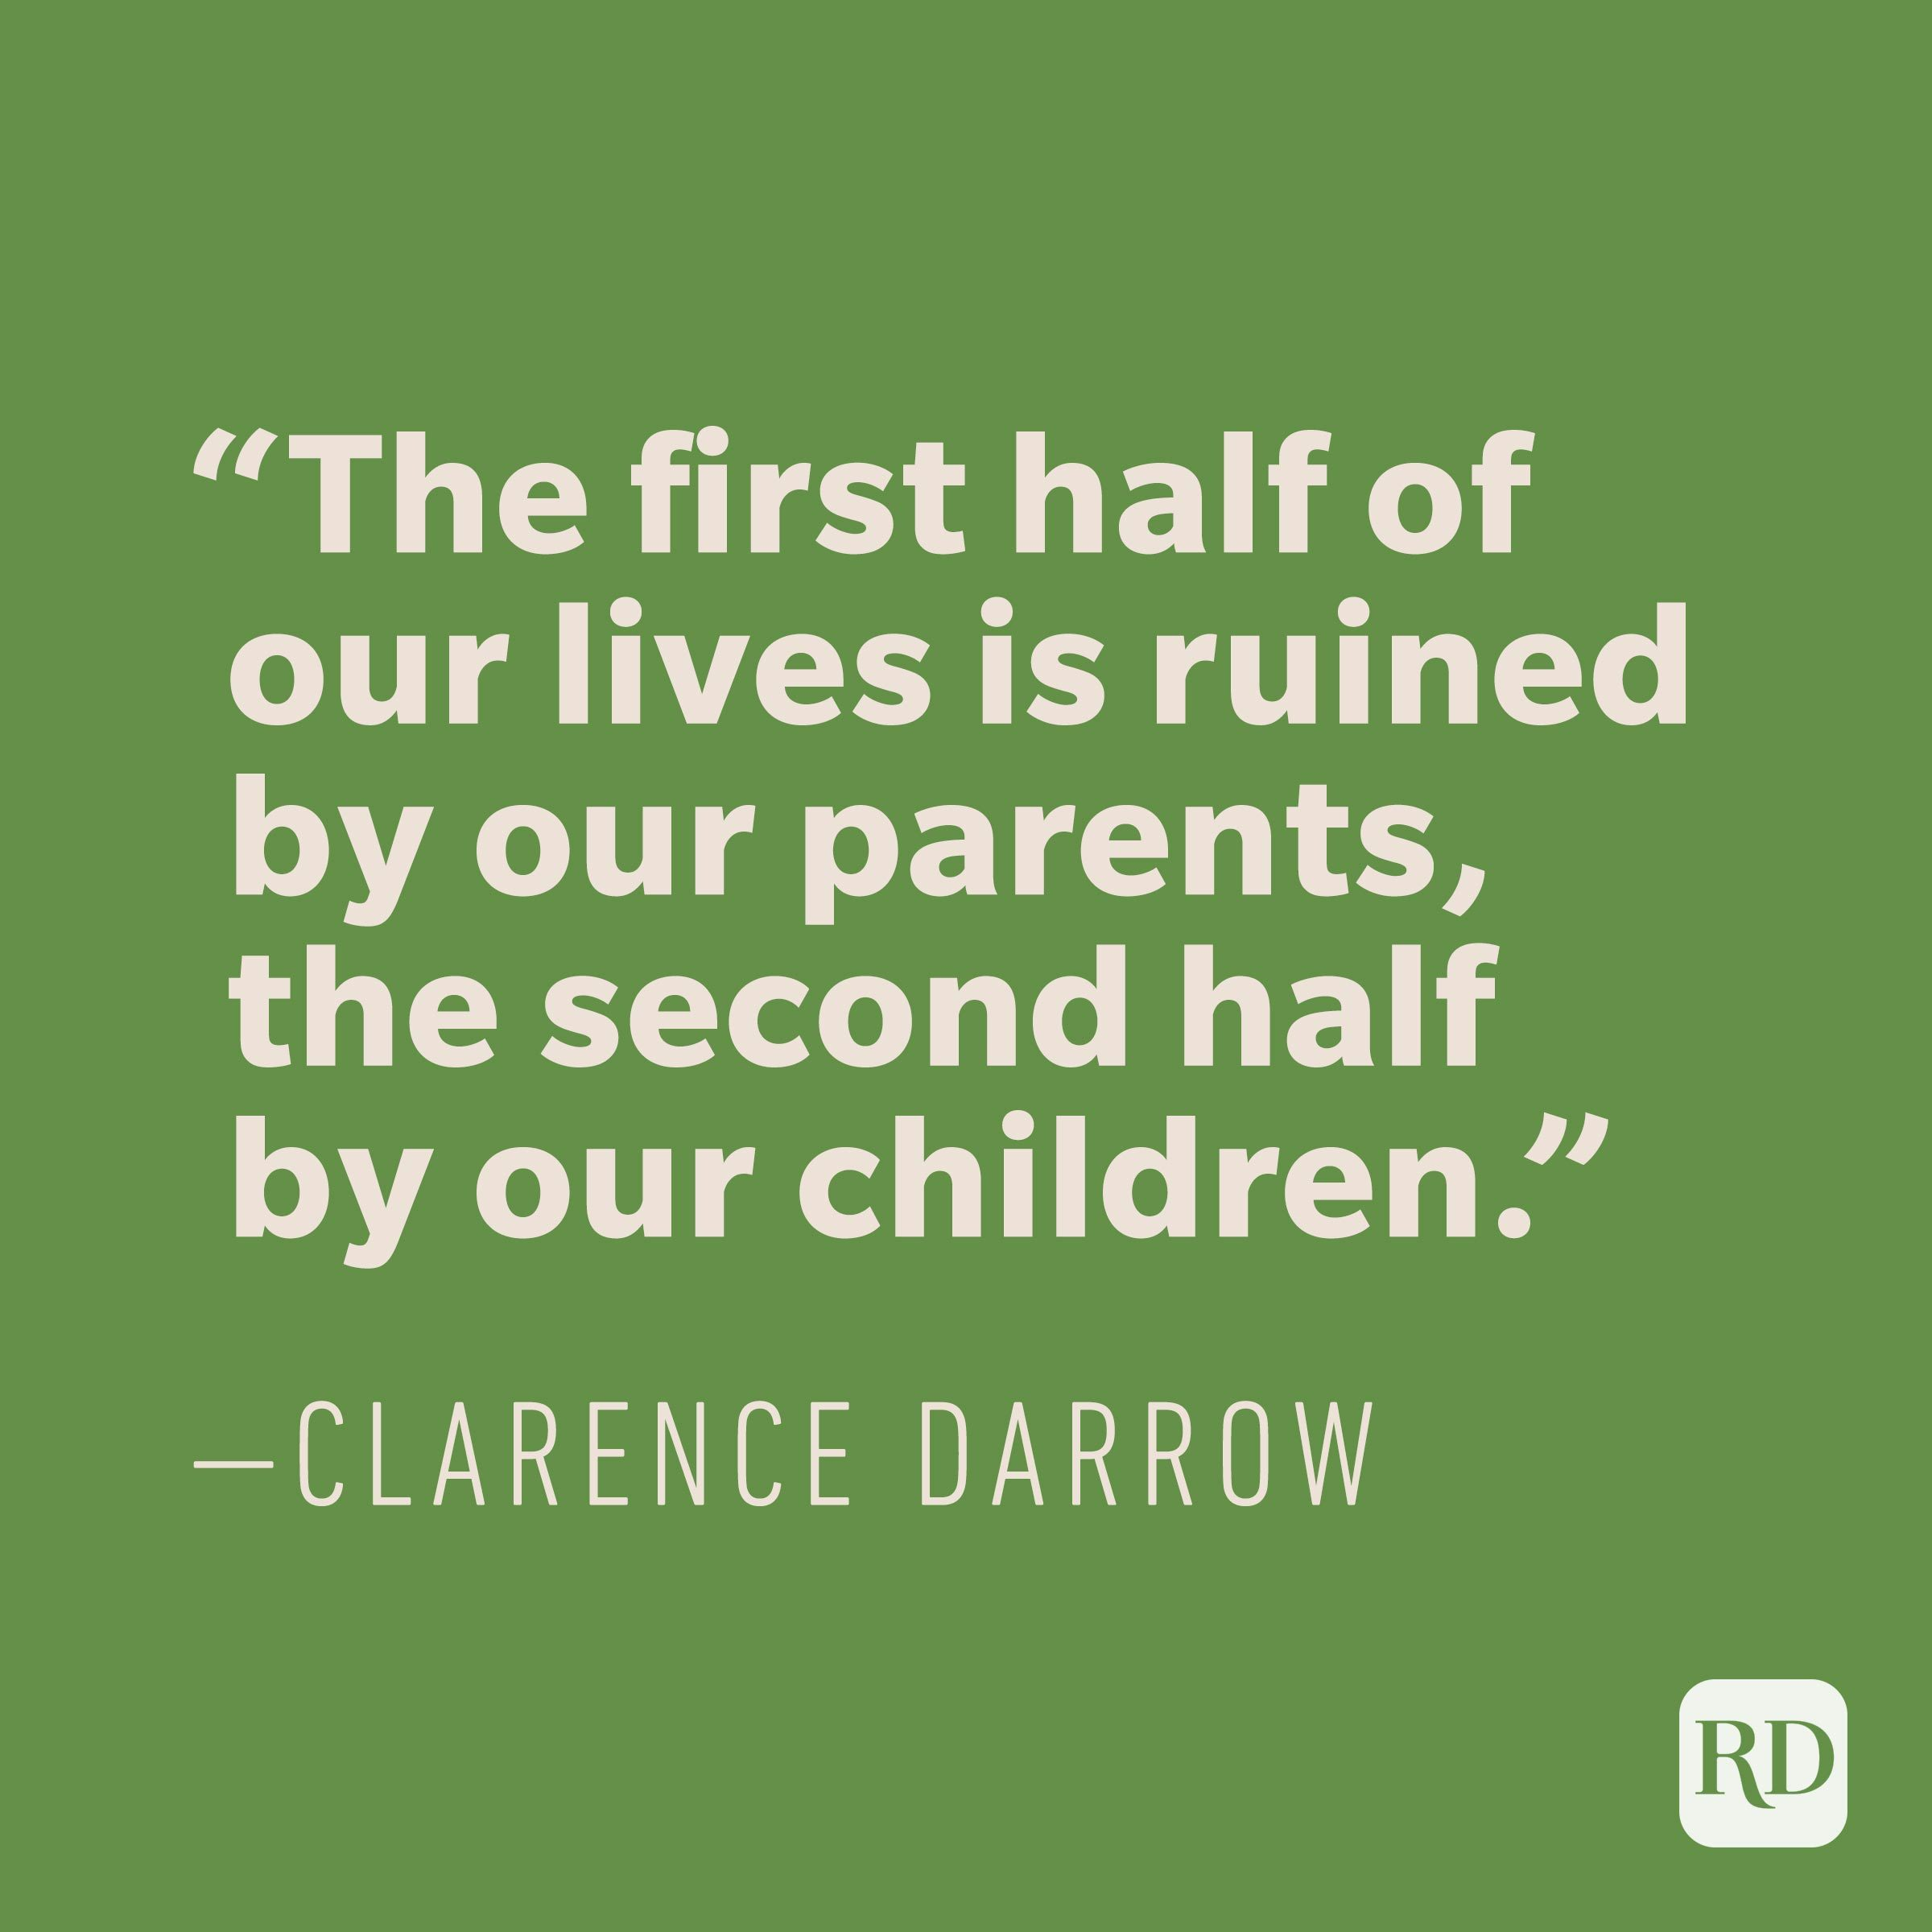 """The first half of our lives is ruined by our parents, the second half by our children."" —CLARENCE DARROW"